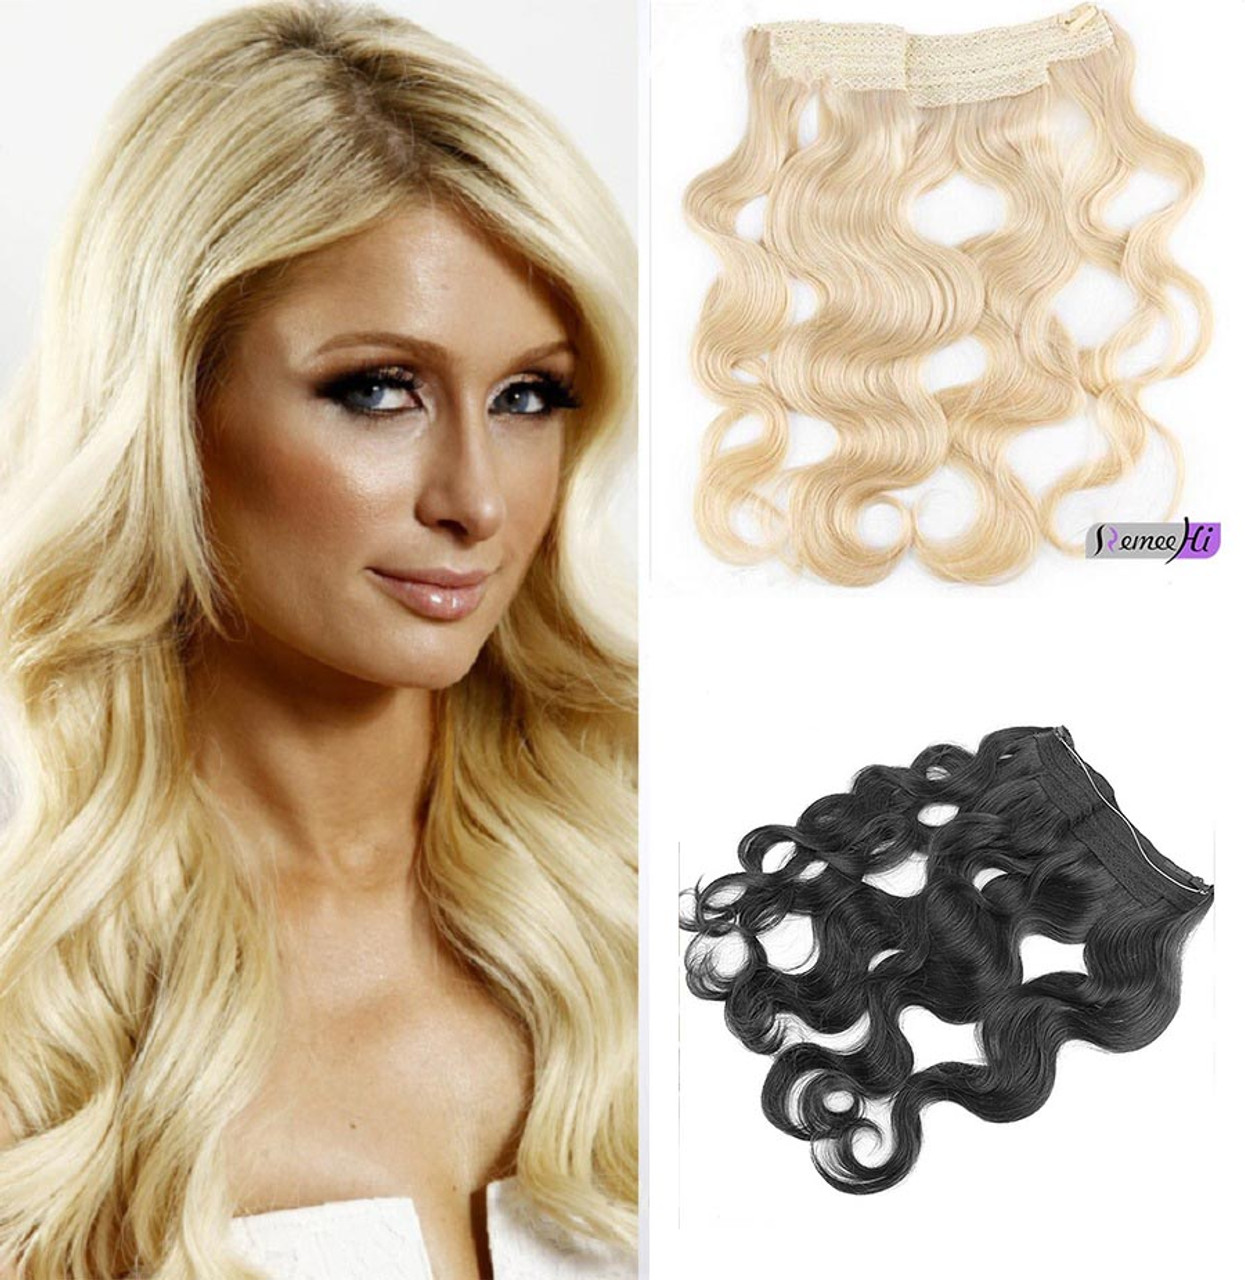 16 30 hidden halo body wave invisible wire one piece secret remeehi 16 30 hidden halo body wave invisible wire one piece secret human hair extensions 120g 28cm pmusecretfo Images